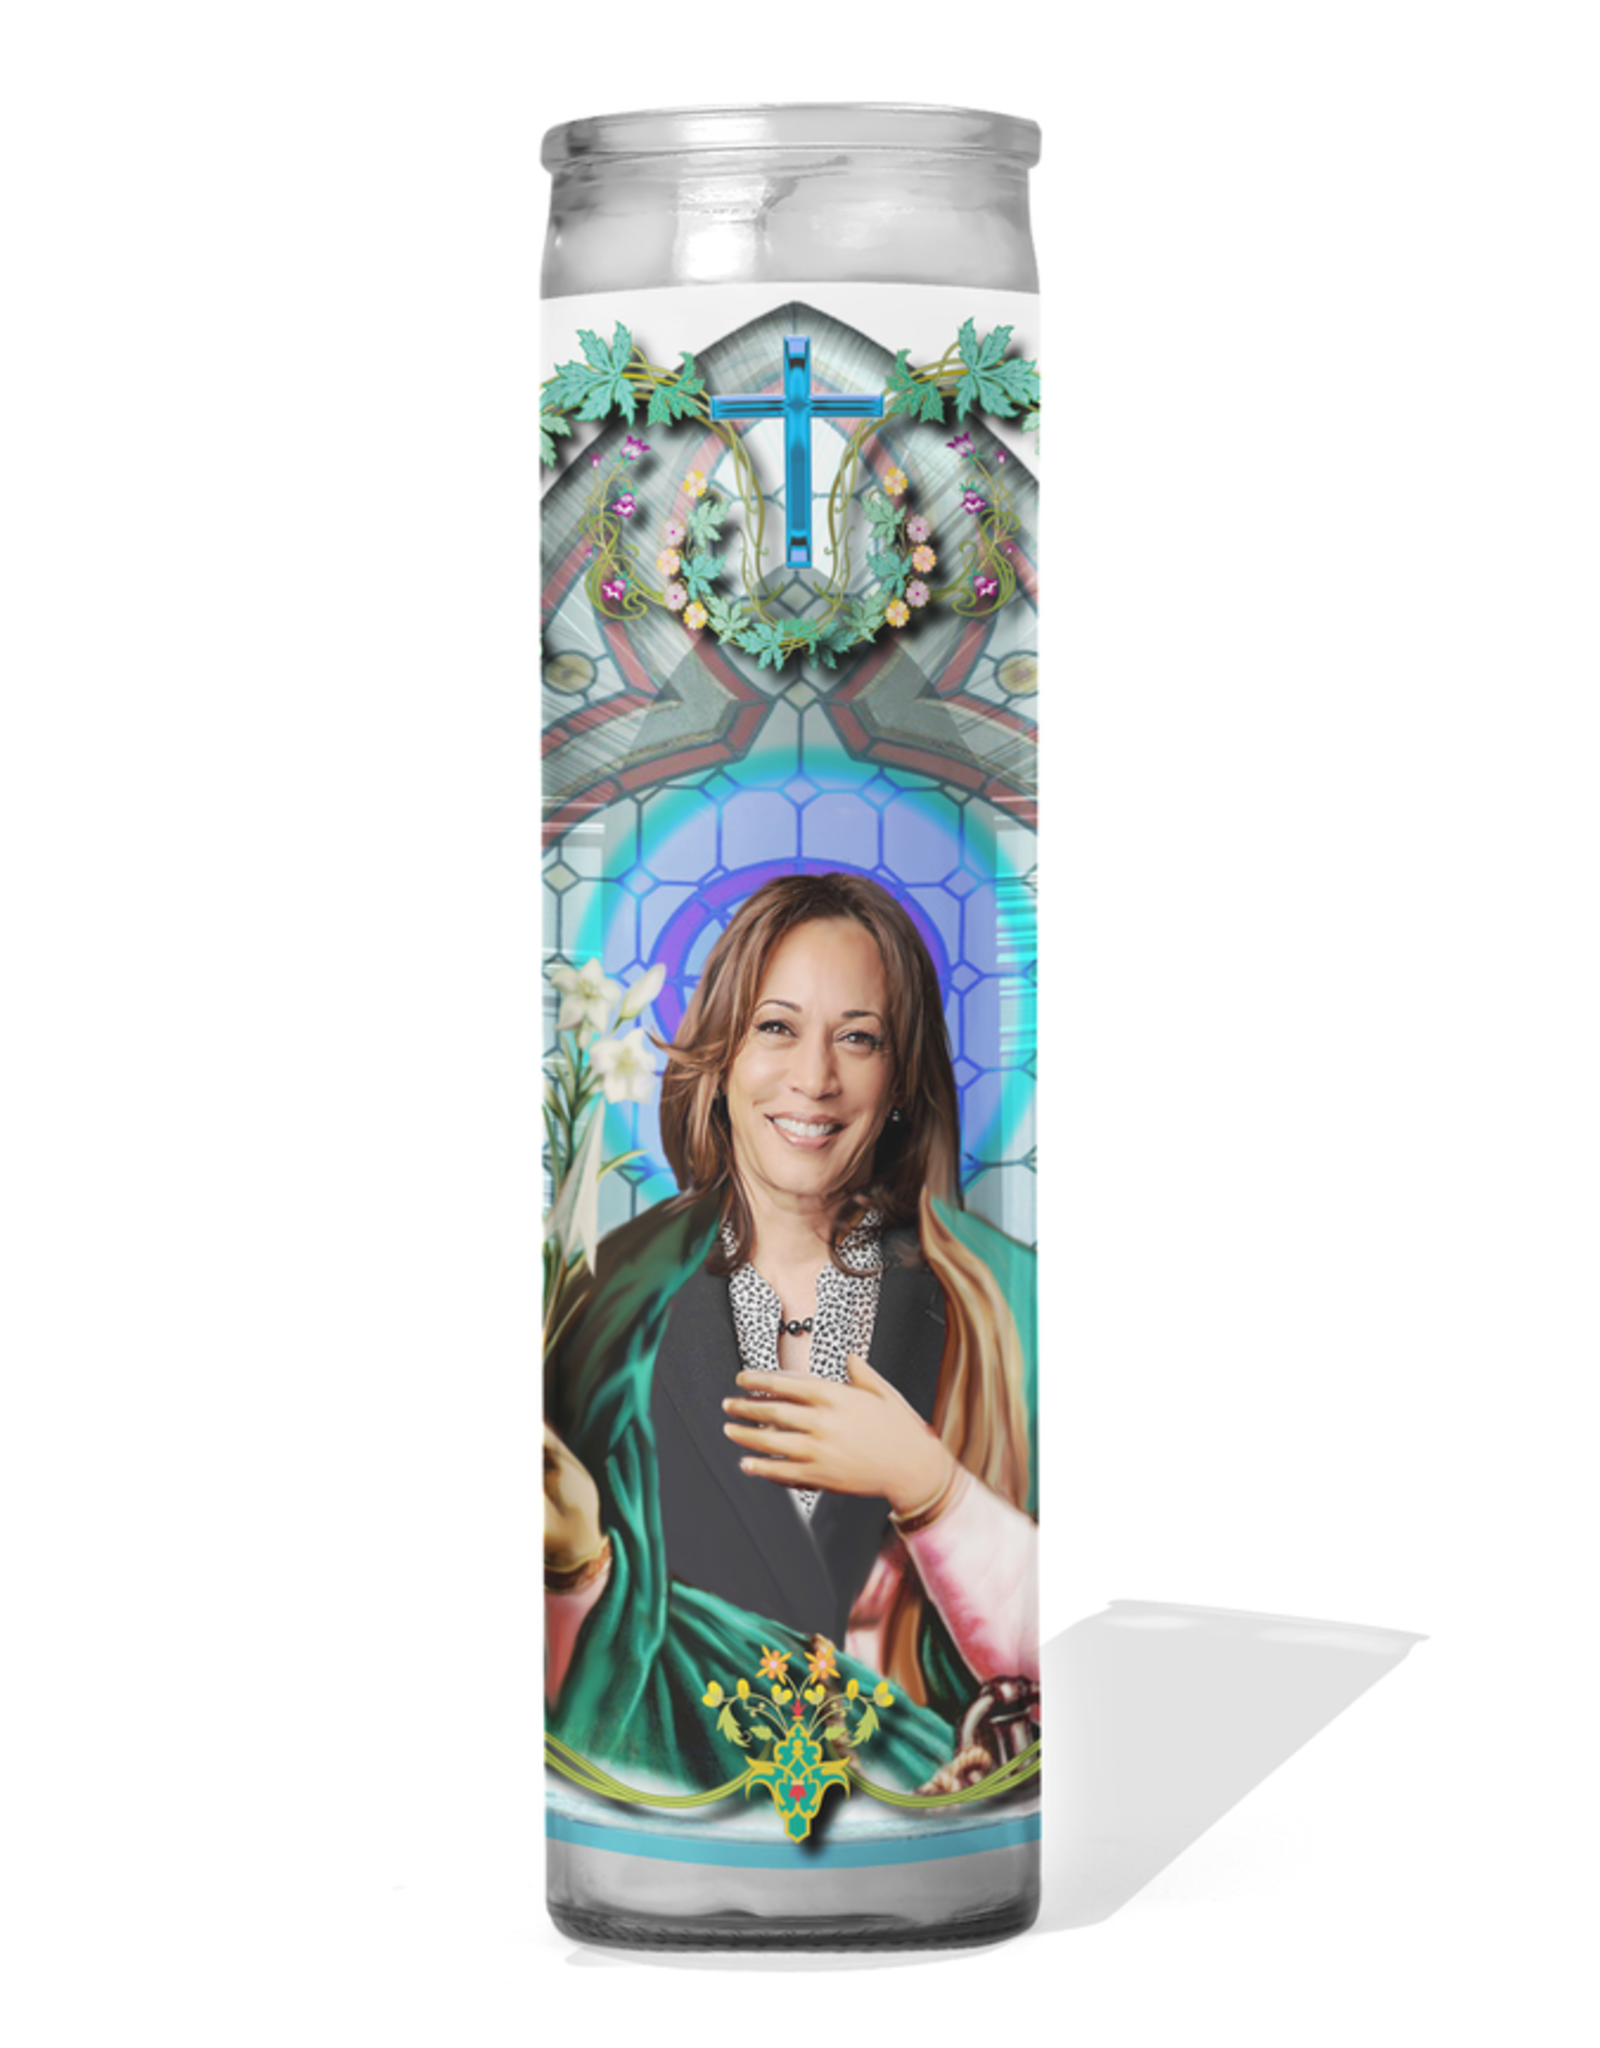 CDC Kamala Harris Prayer Candle